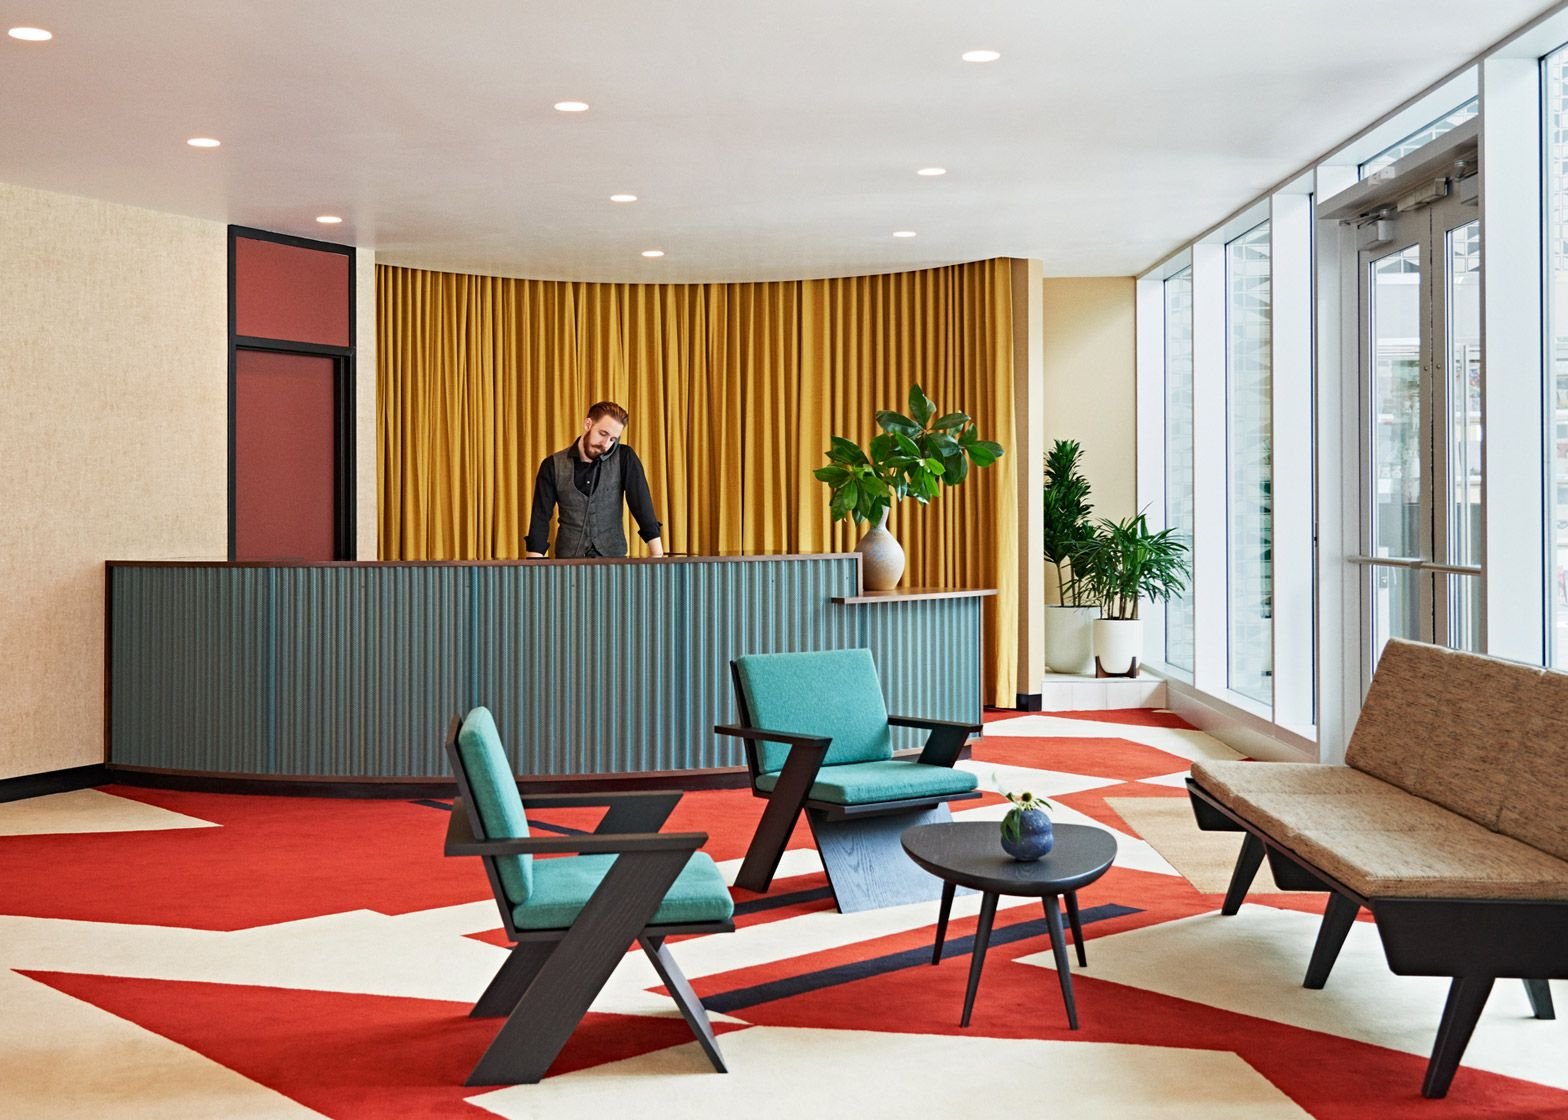 Commune Design Has Transformed A Mid Century Modern Office Building In North  Carolina Into A Boutique Hotel With Geometric Patterns And Vintage Style  Decor.